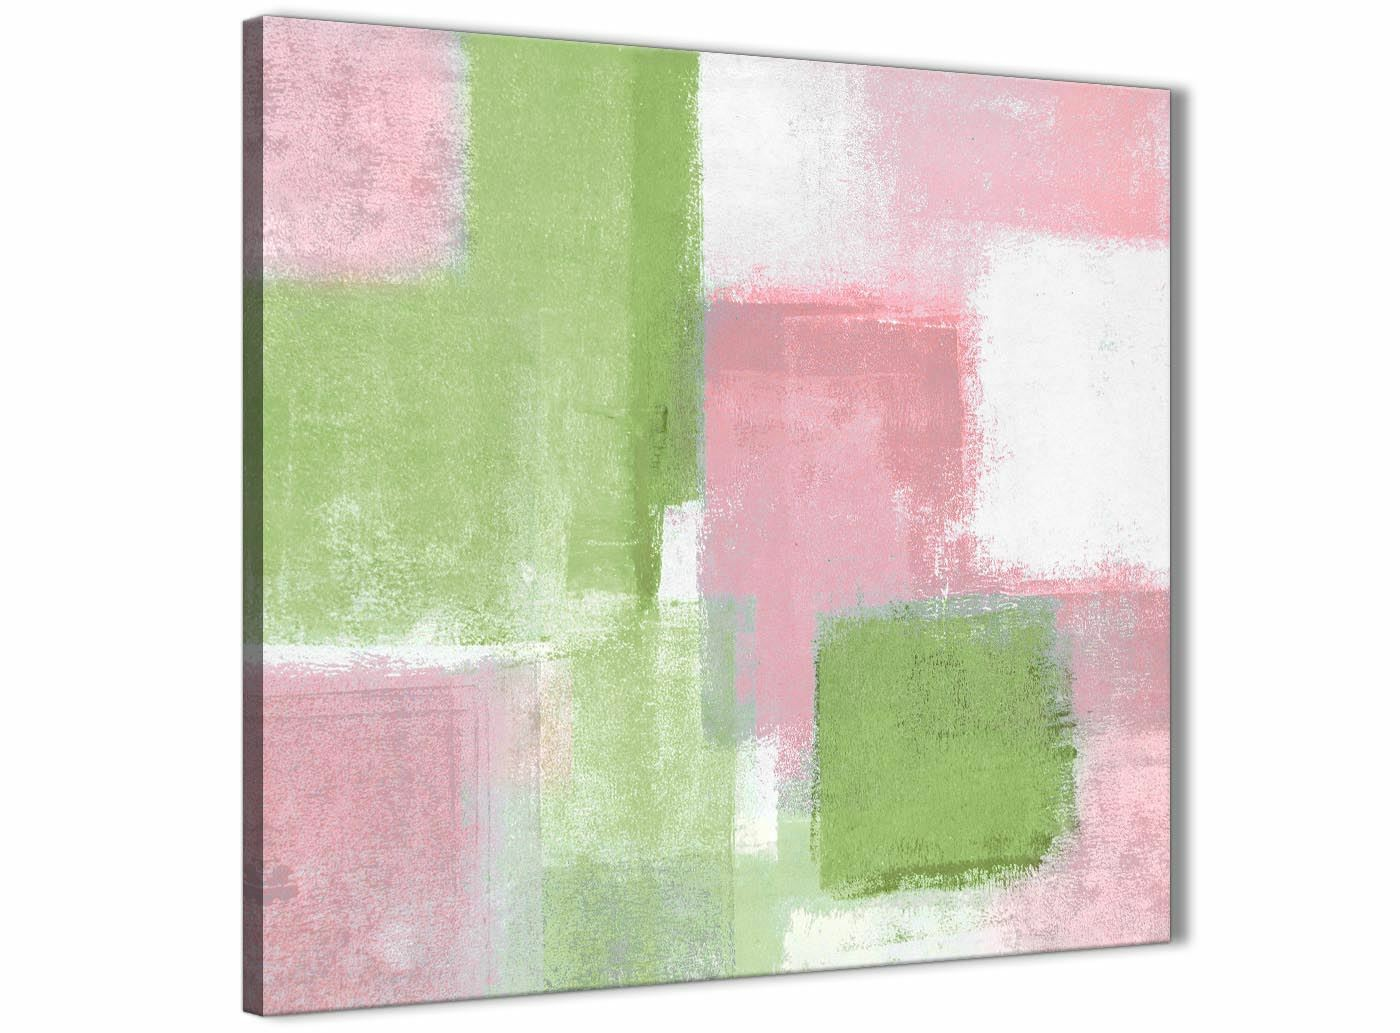 Rosa Lime Grün Living Room Canvas Prints Prints Prints Decorations - Abstract 1s374l - 64cm 61ea3e